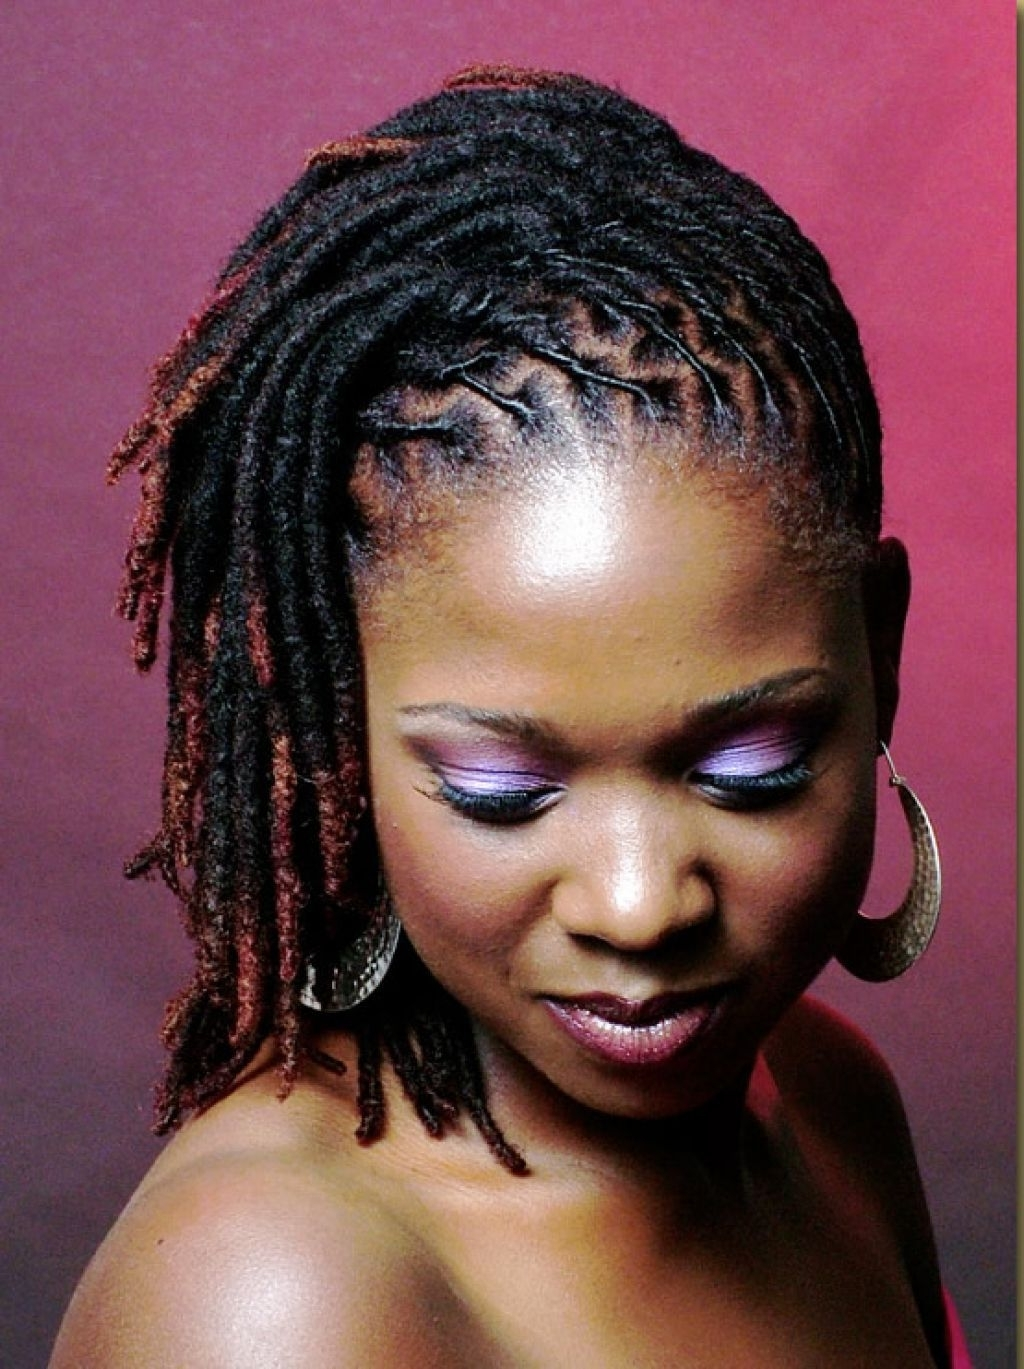 Dreadfully Gorgeous Regarding Most Up To Date Braided Dreads Hairstyles For Women (View 6 of 15)